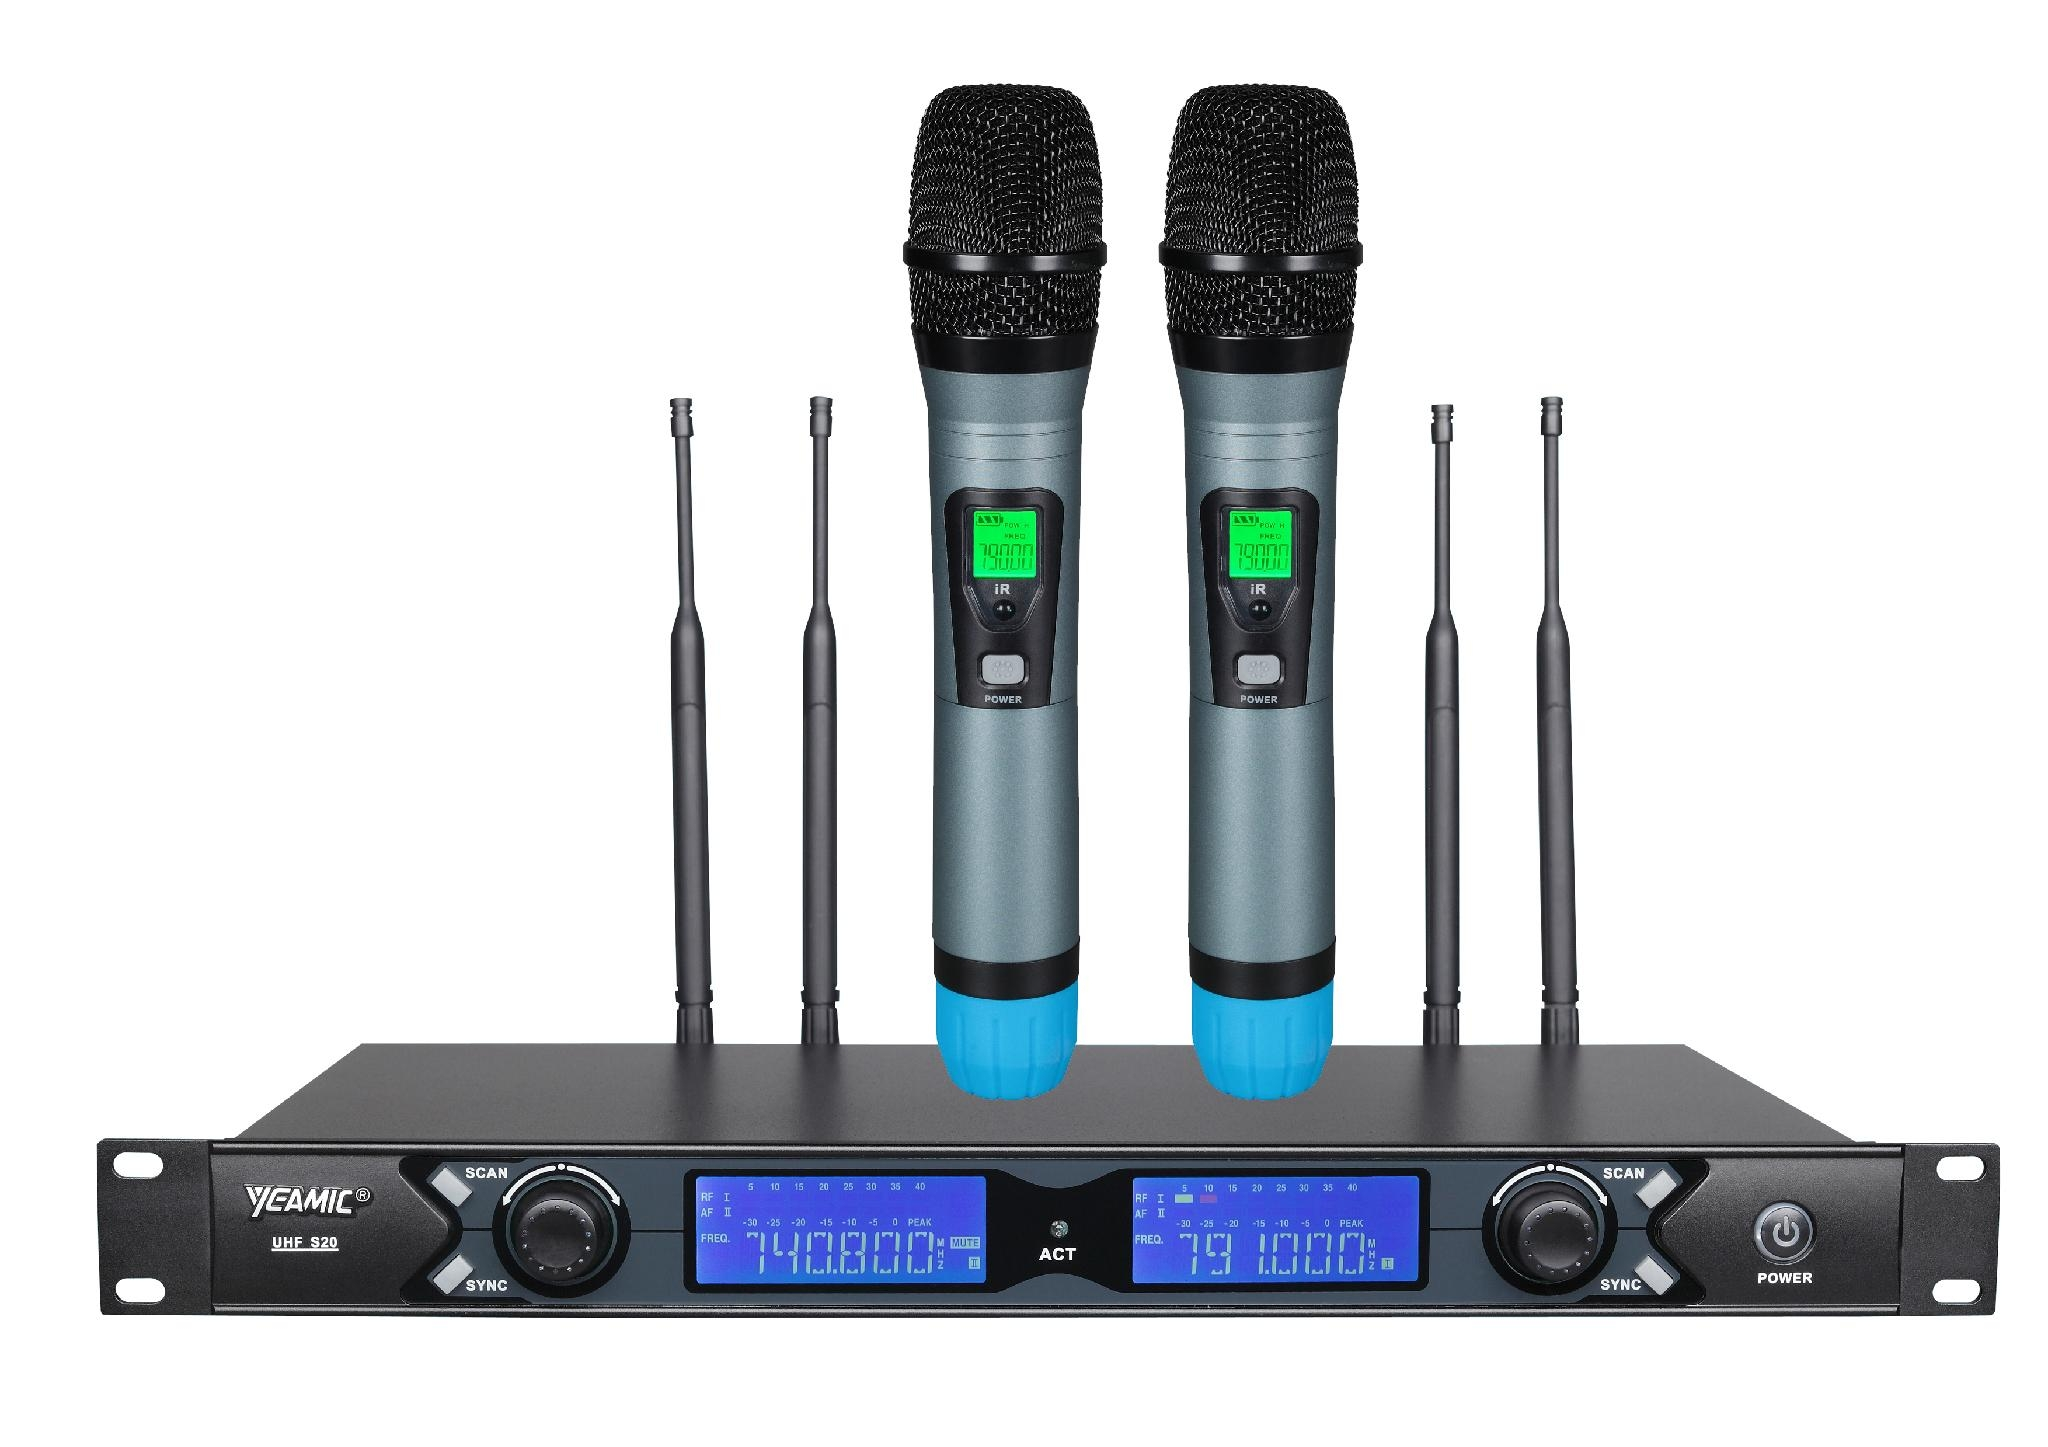 wireless microphone 2 channel cordless lapel mics remote dynamic mic for sale s20 h5 yeamic. Black Bedroom Furniture Sets. Home Design Ideas